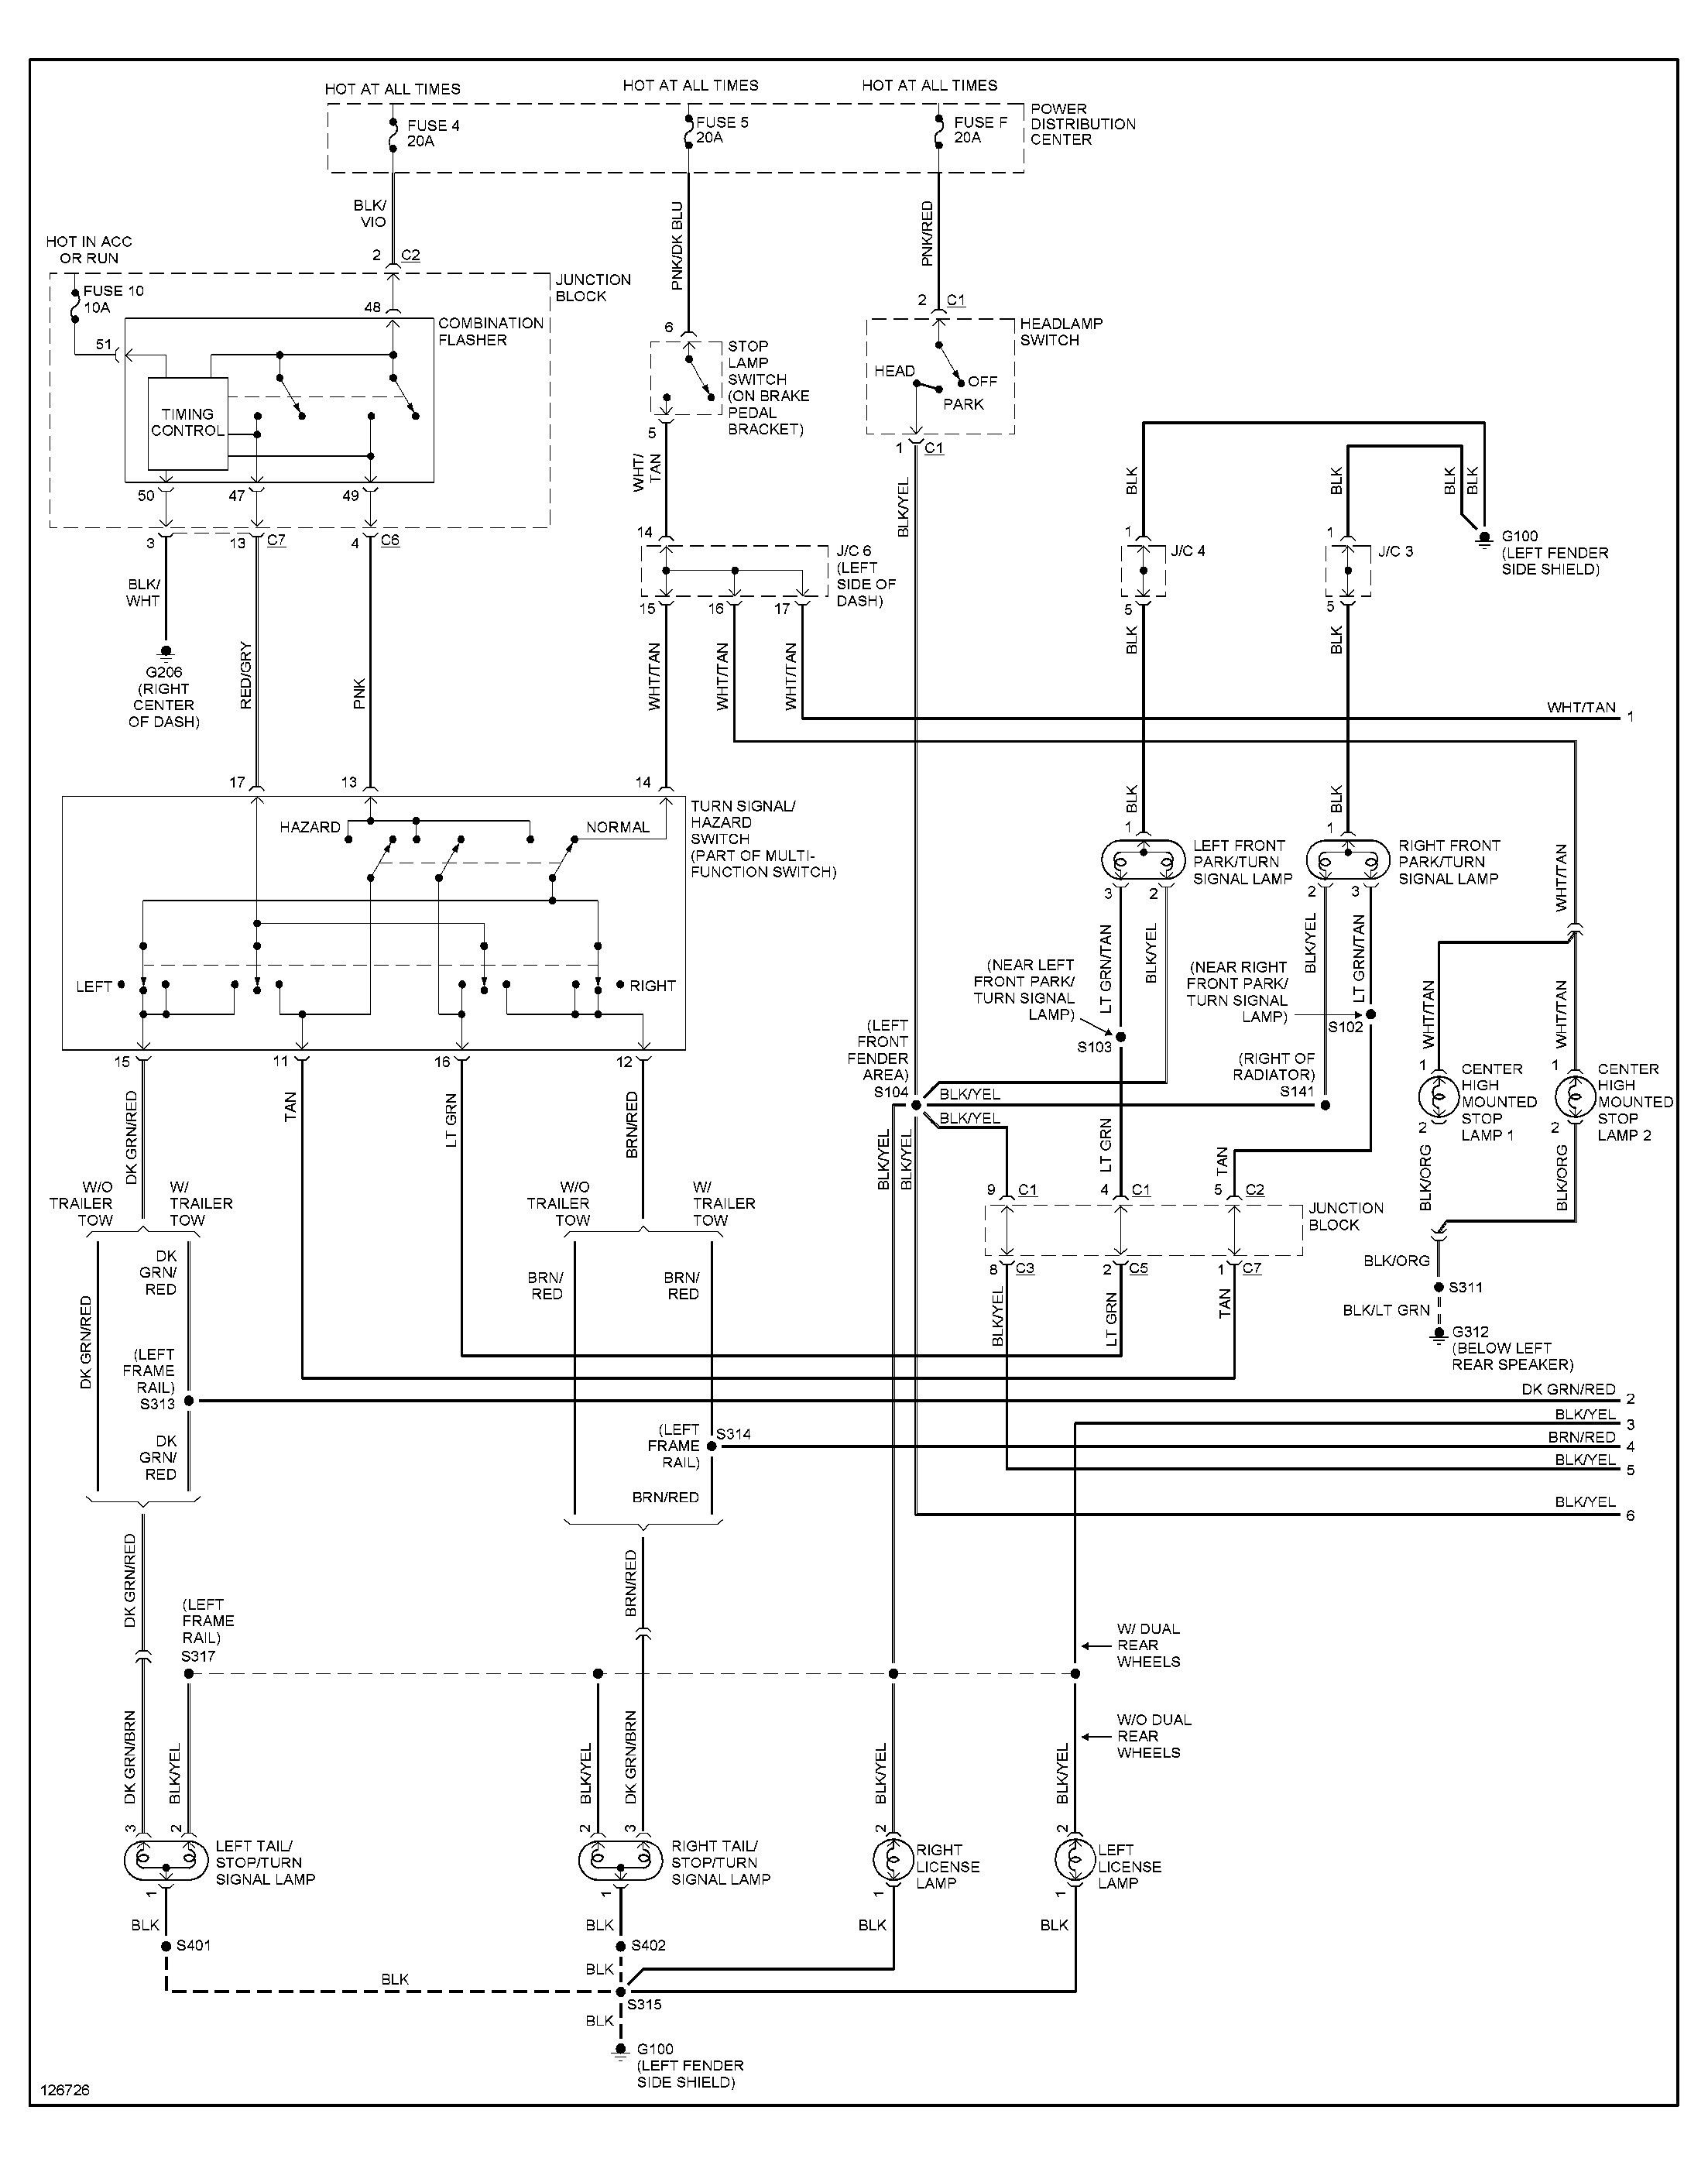 2003 Dodge Ram Tail Light Wiring Diagram In 2021 Jeep Grand Cherokee Trailer Wiring Diagram Dodge Ram